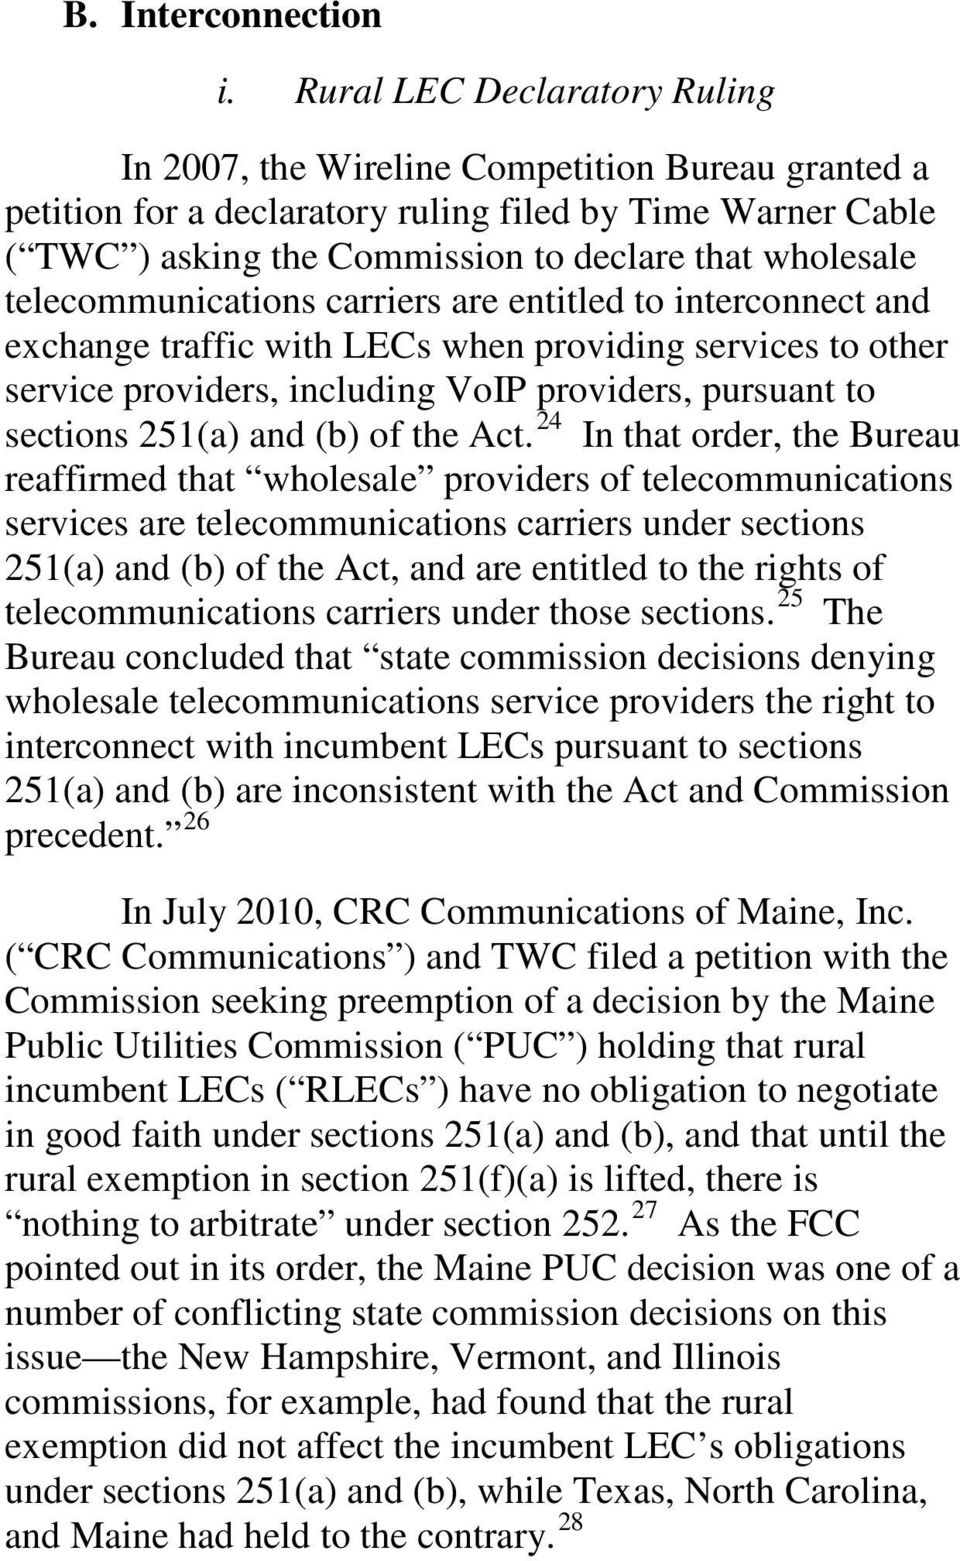 telecommunications carriers are entitled to interconnect and exchange traffic with LECs when providing services to other service providers, including VoIP providers, pursuant to sections 251(a) and